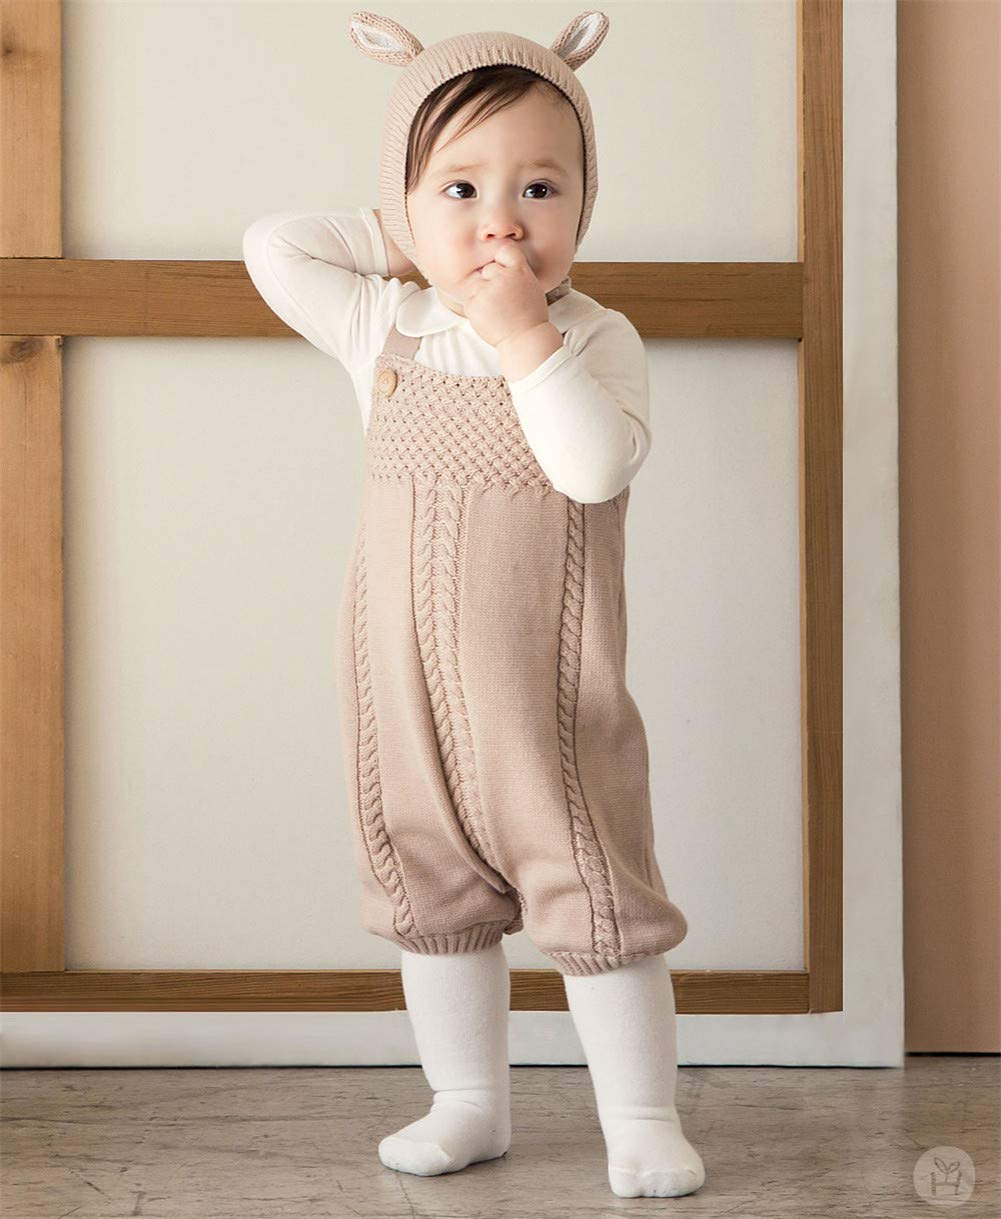 B07H7C2YZP Auro Mesa Infant Baby Knit Romper Overalls Cute Infant Clothing, Baby Onesies Unisex,Baby One-Pieces Jumpsuit Outfit Clothes (18-24M) Brown 61DliALJY4L